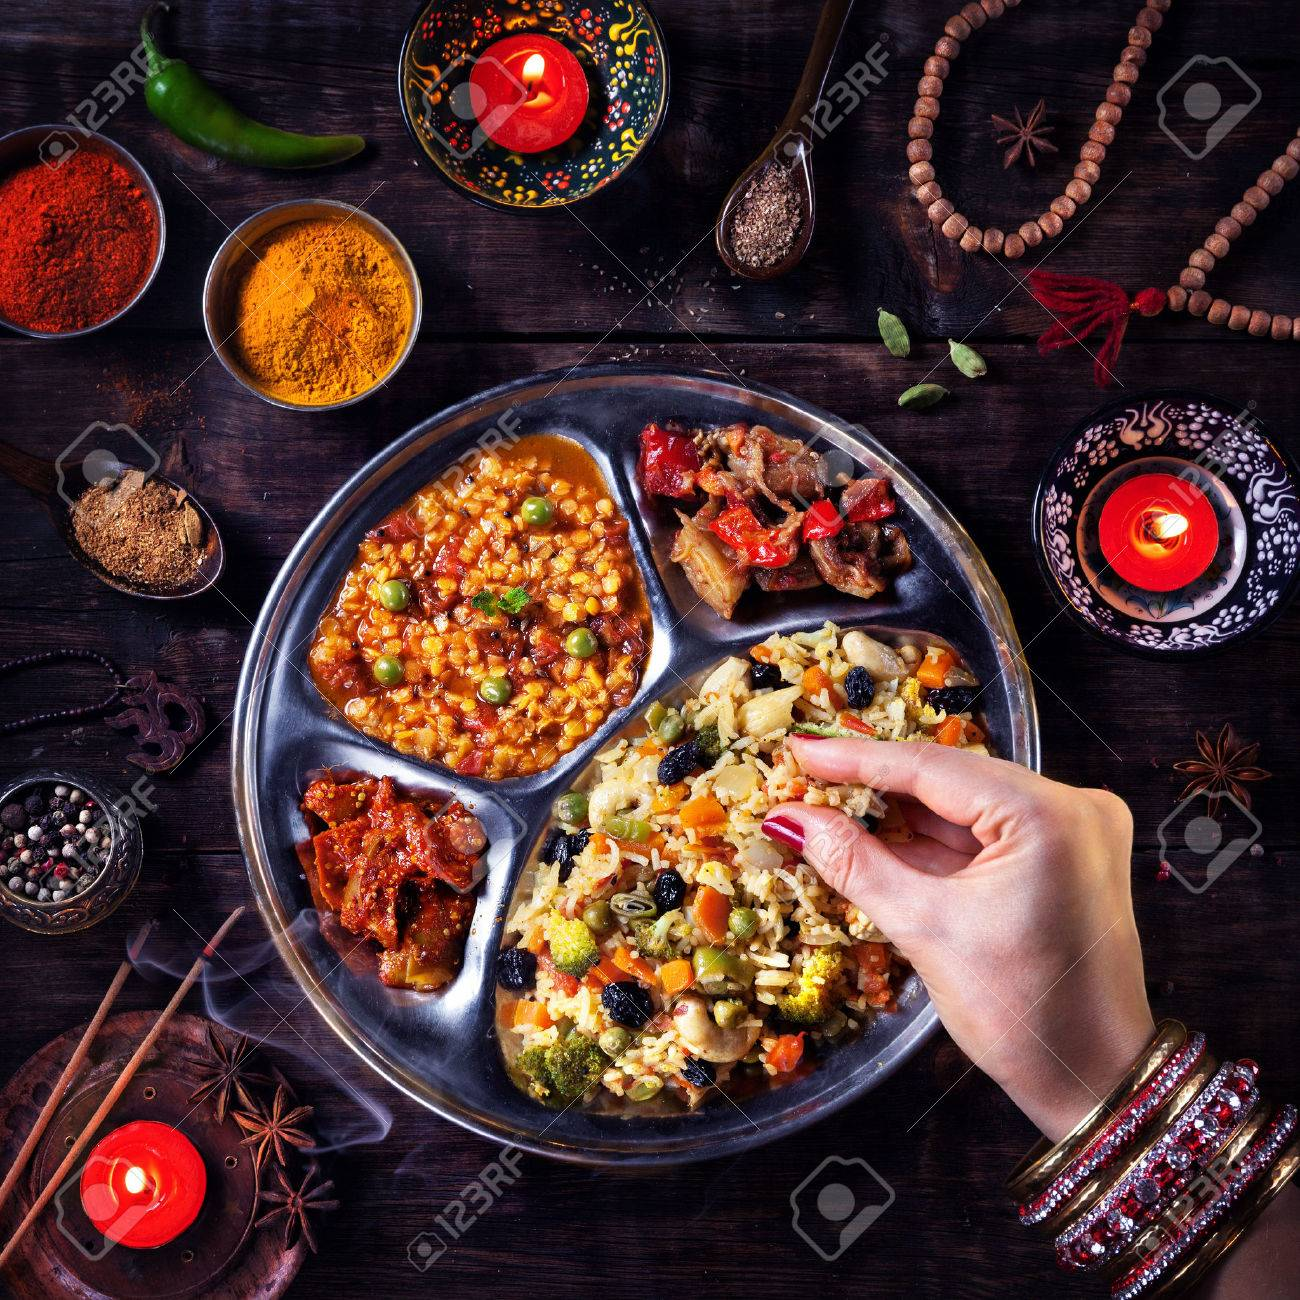 Woman eating vegetarian biryani by her hand with bangles near candles, incense and religious symbols at Diwali celebration Stock Photo - 45388774